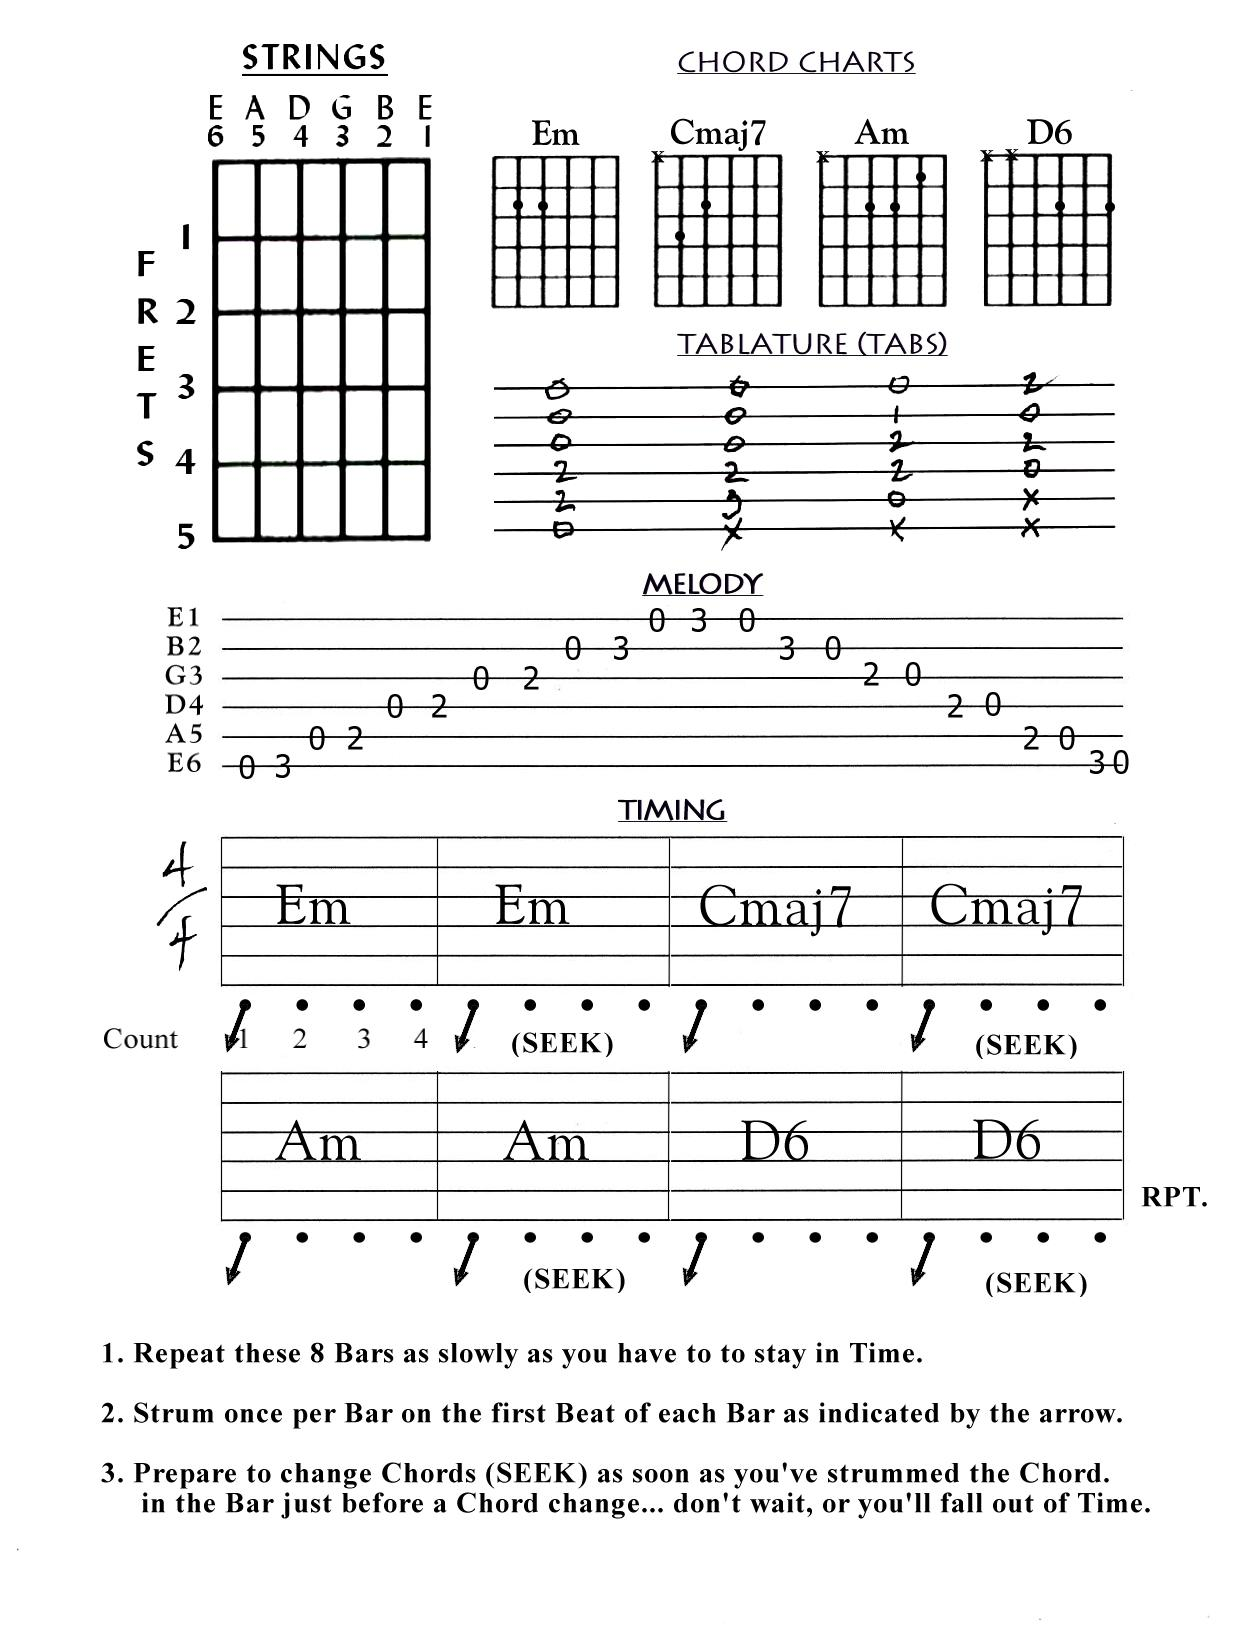 Guitar Chord Charts Explained - First Chord, E Minor - YouTube